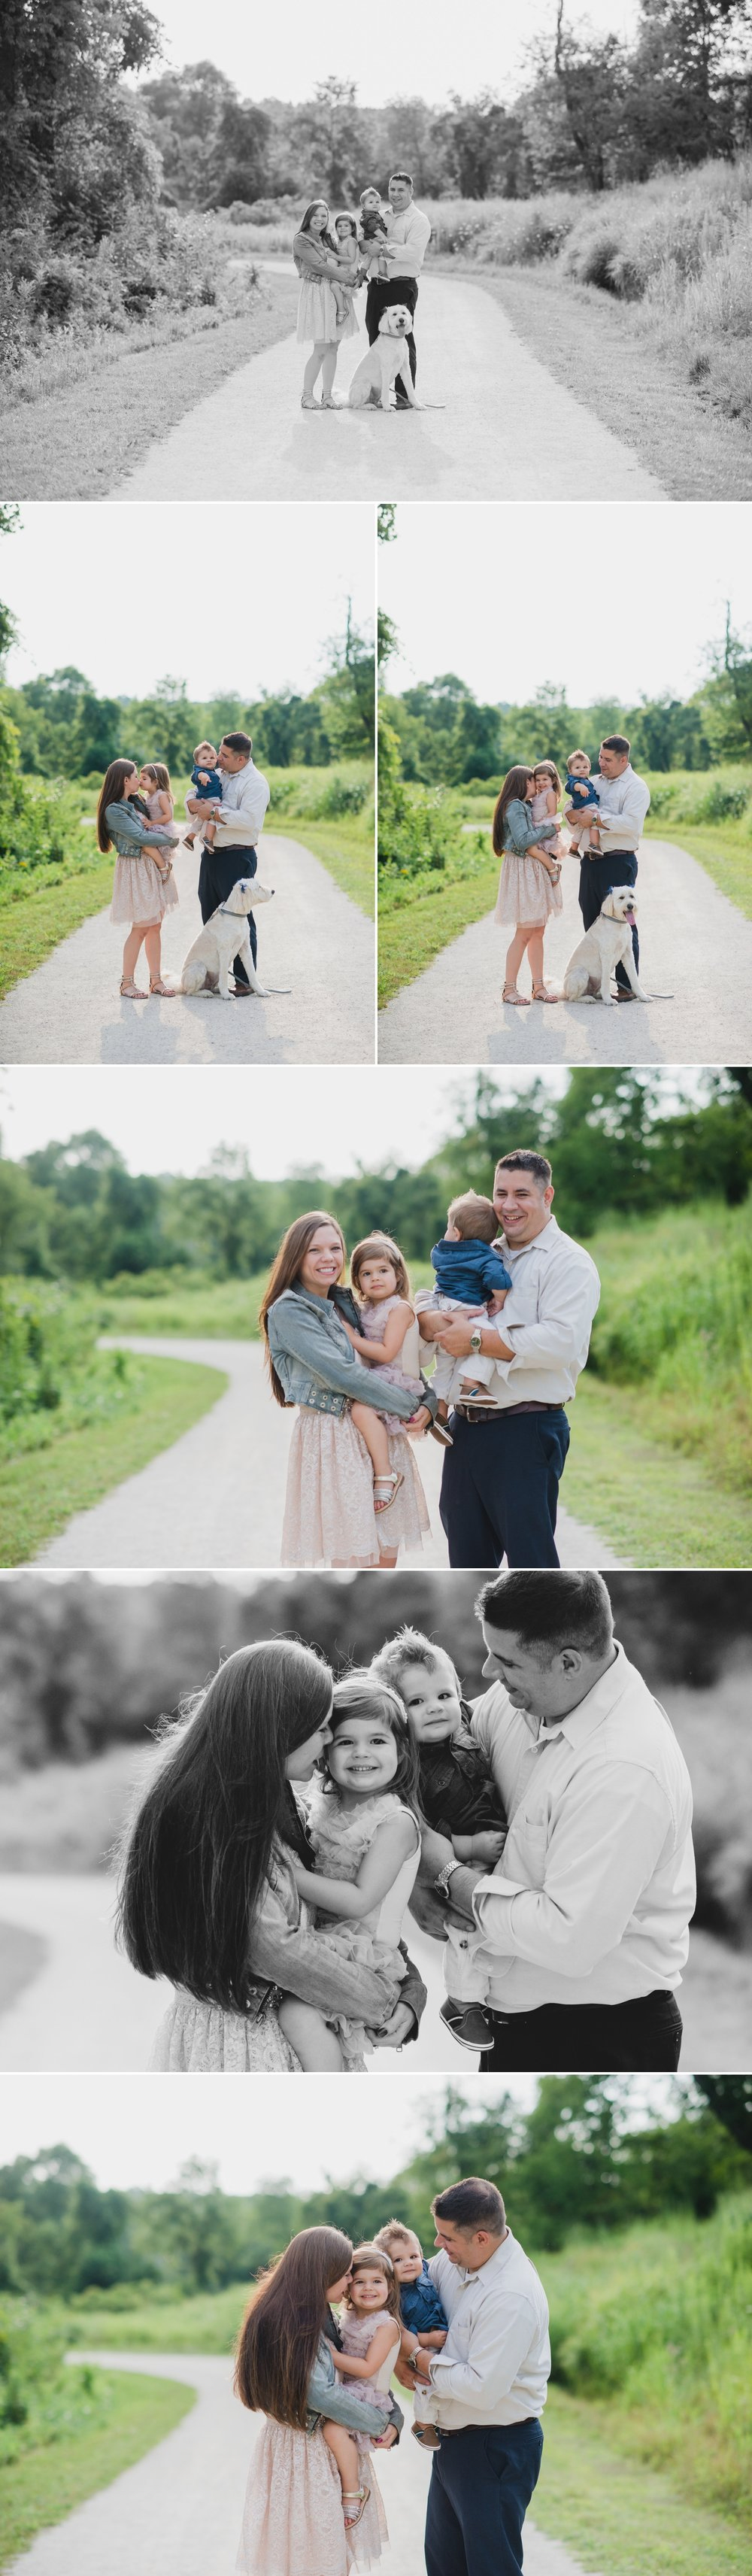 Ashleigh Saylor Photography Canton Ohio family photos 3.jpg